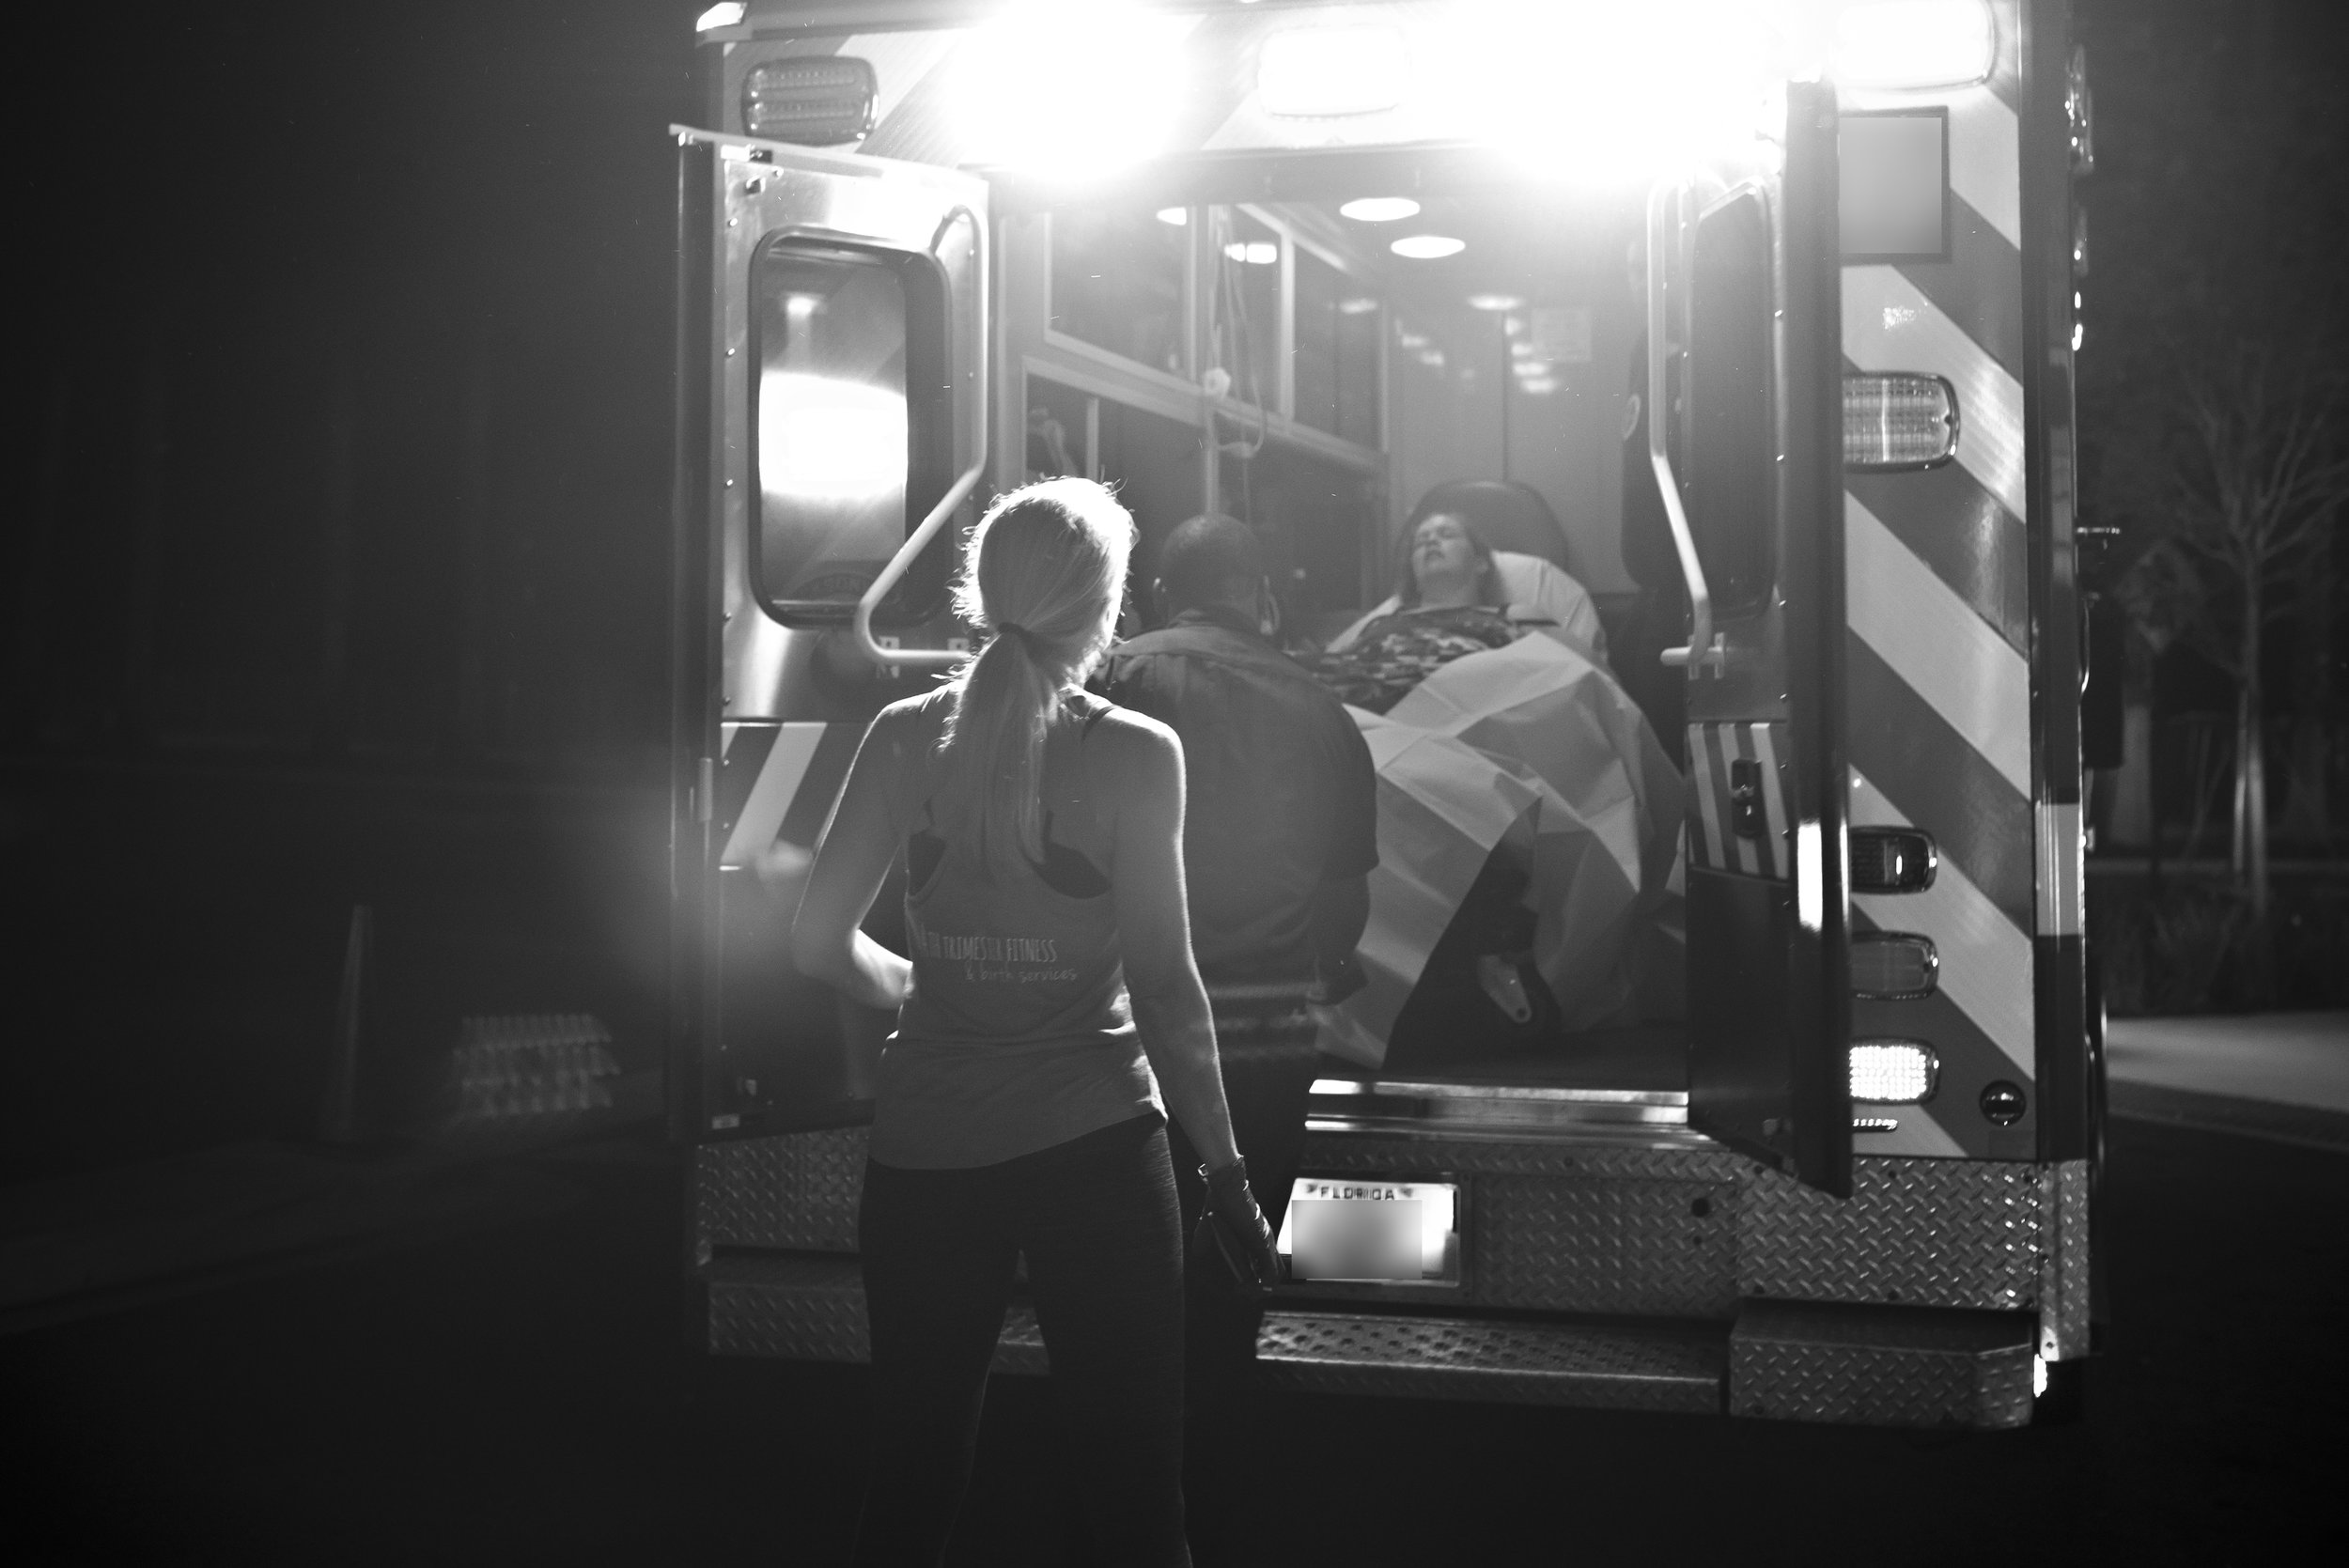 Doula watches her birth client exit an ambulance as they arrive at the UF Birth Center in Jacksonville, Florida. Mom went on to have a peaceful water birth.